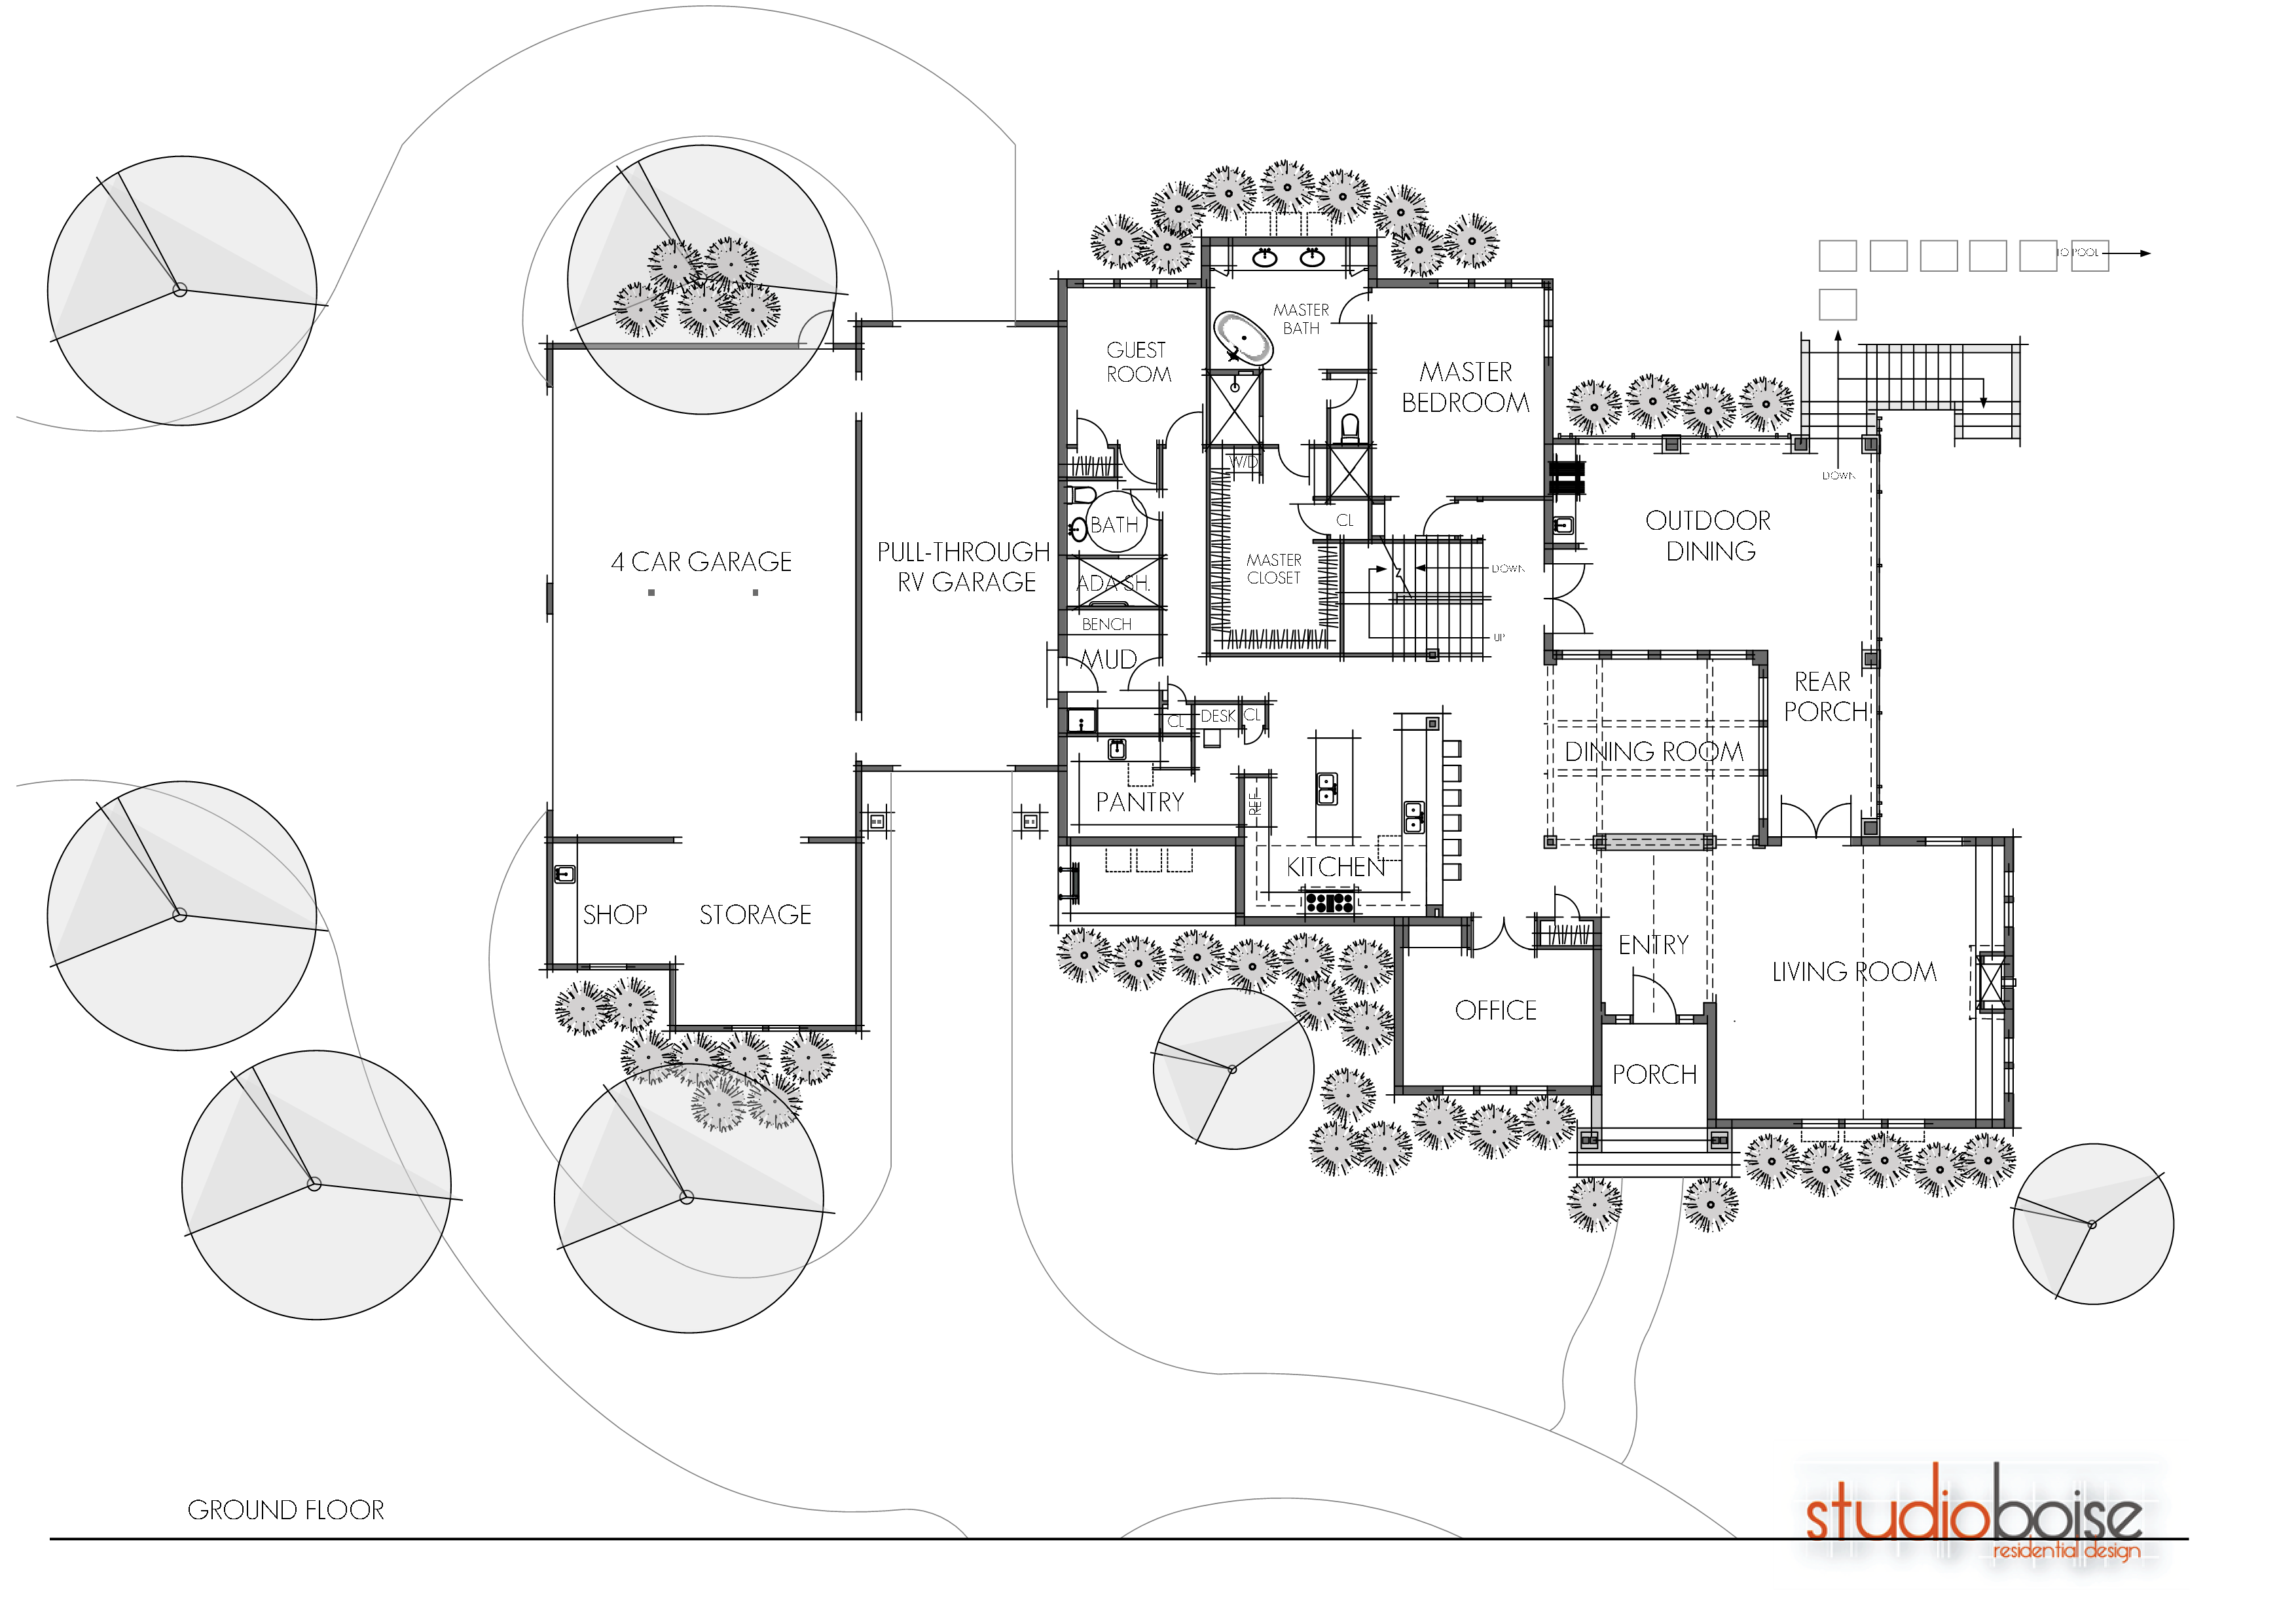 Studio Boise Residential And Architectural Design Home